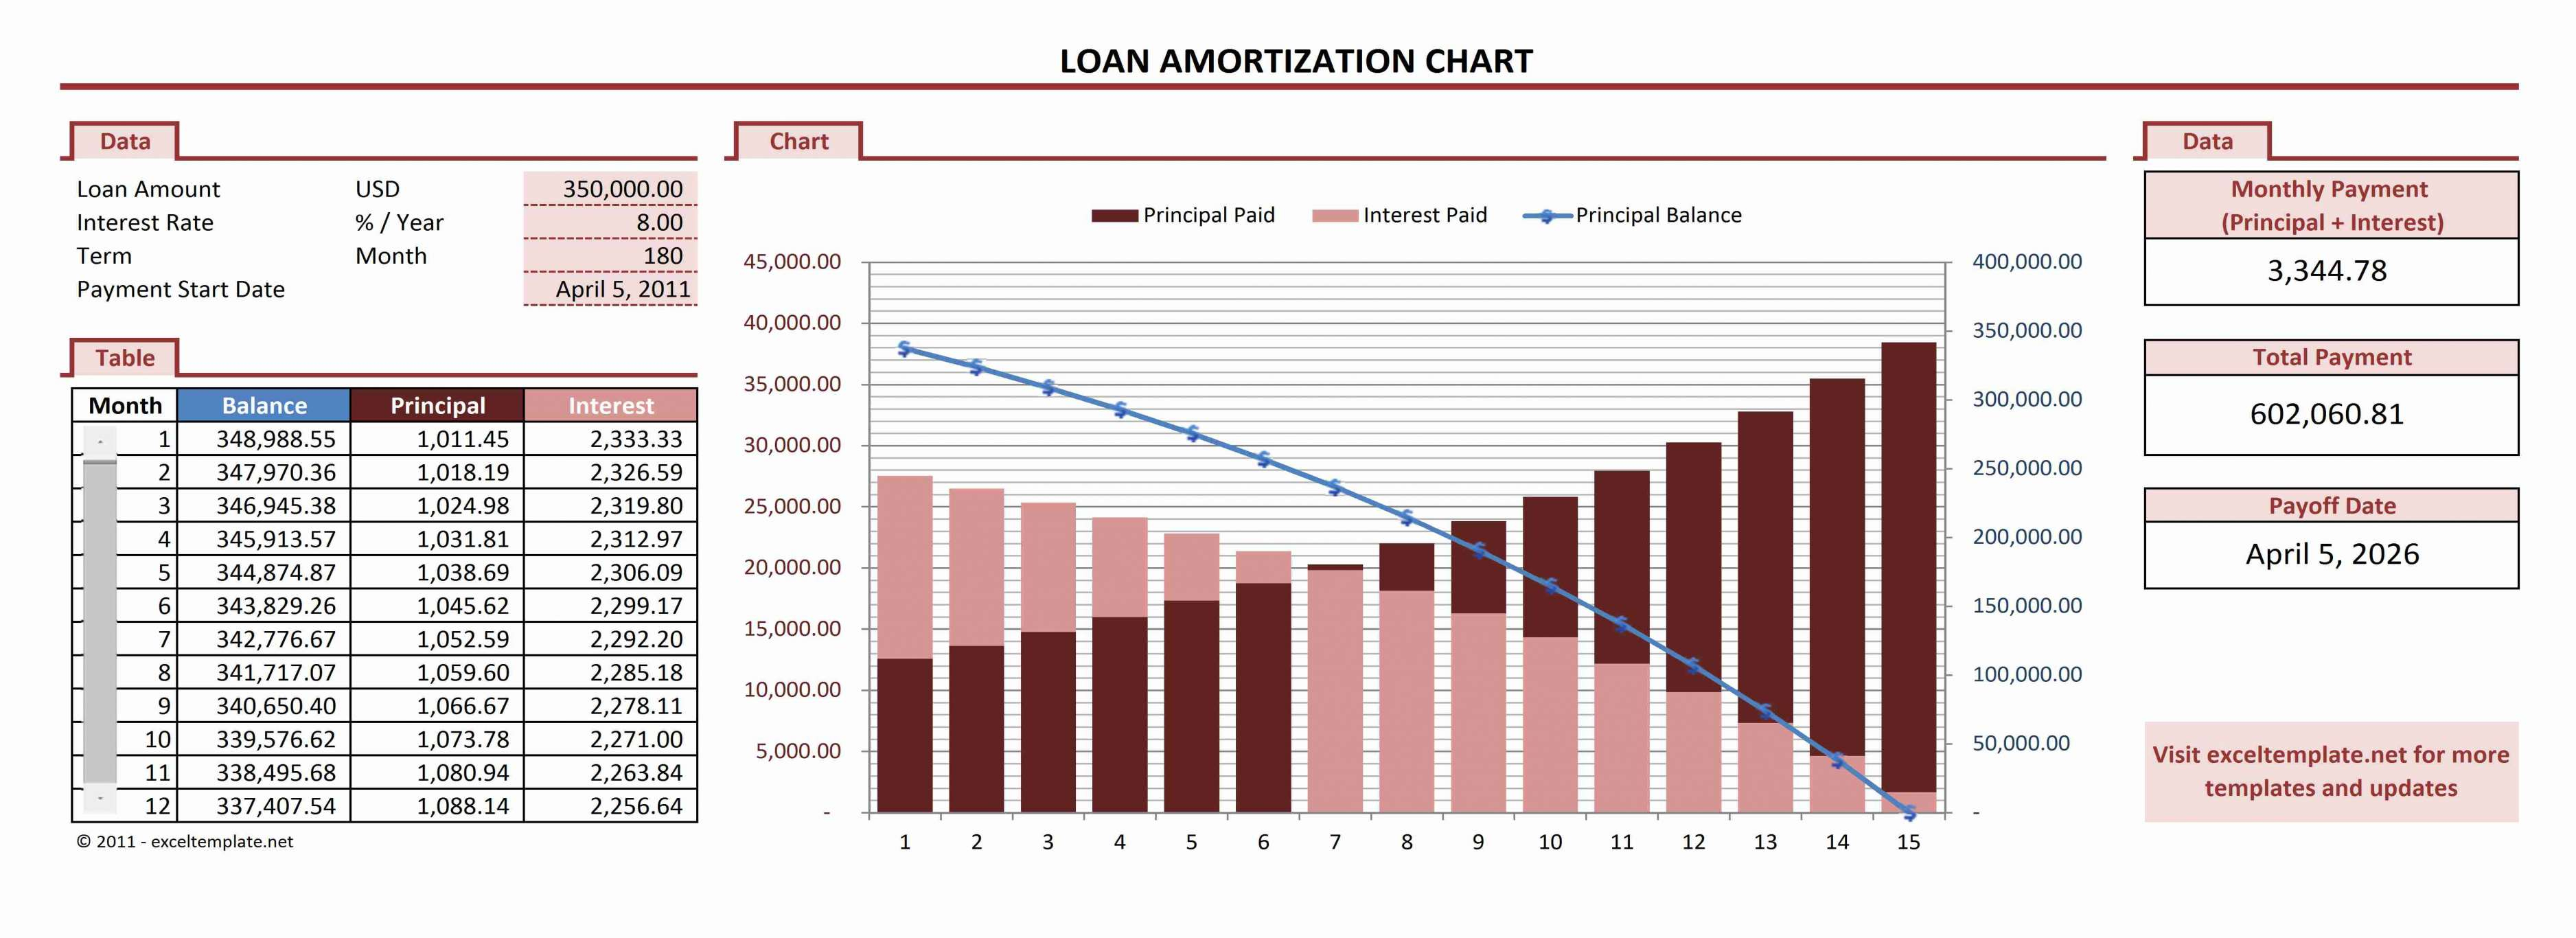 Mortgage Amortization Calculator Extra Payments Spreadsheet With Mortgage Amortization Table With Extra Payments  Indiansocial